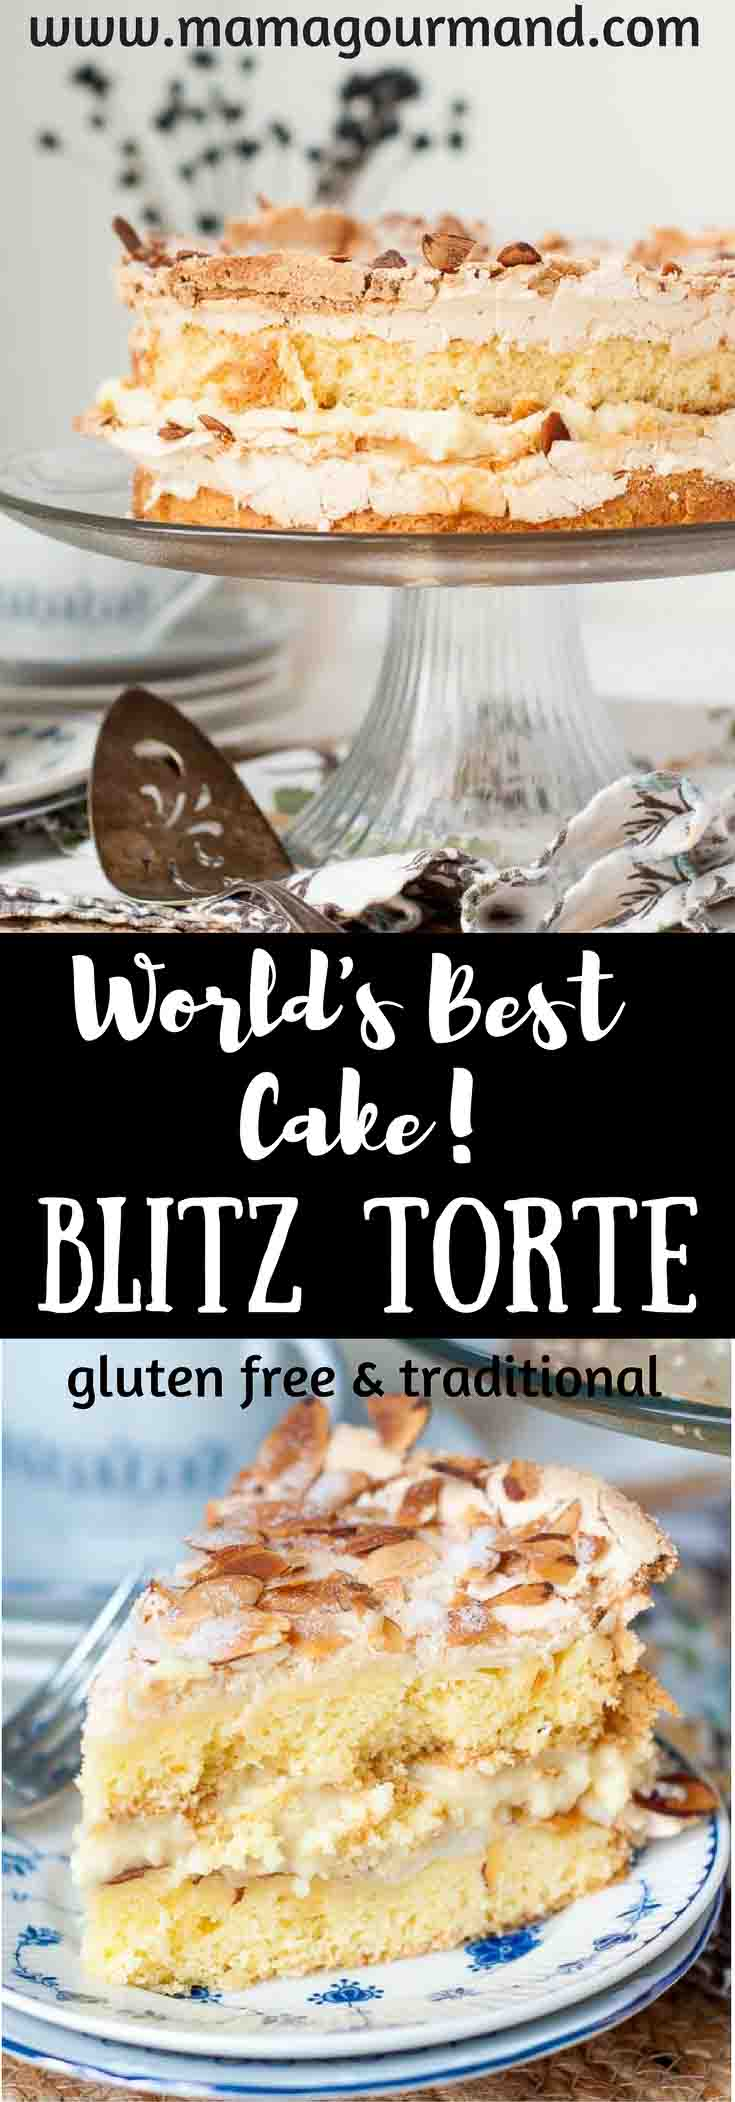 World's Best Blitz Torte is an explosion of textures and tastes with a crunchy, crackling top, chewy, dense cake and a creamy, custard vanilla filling. http://www.mamagourmand.com